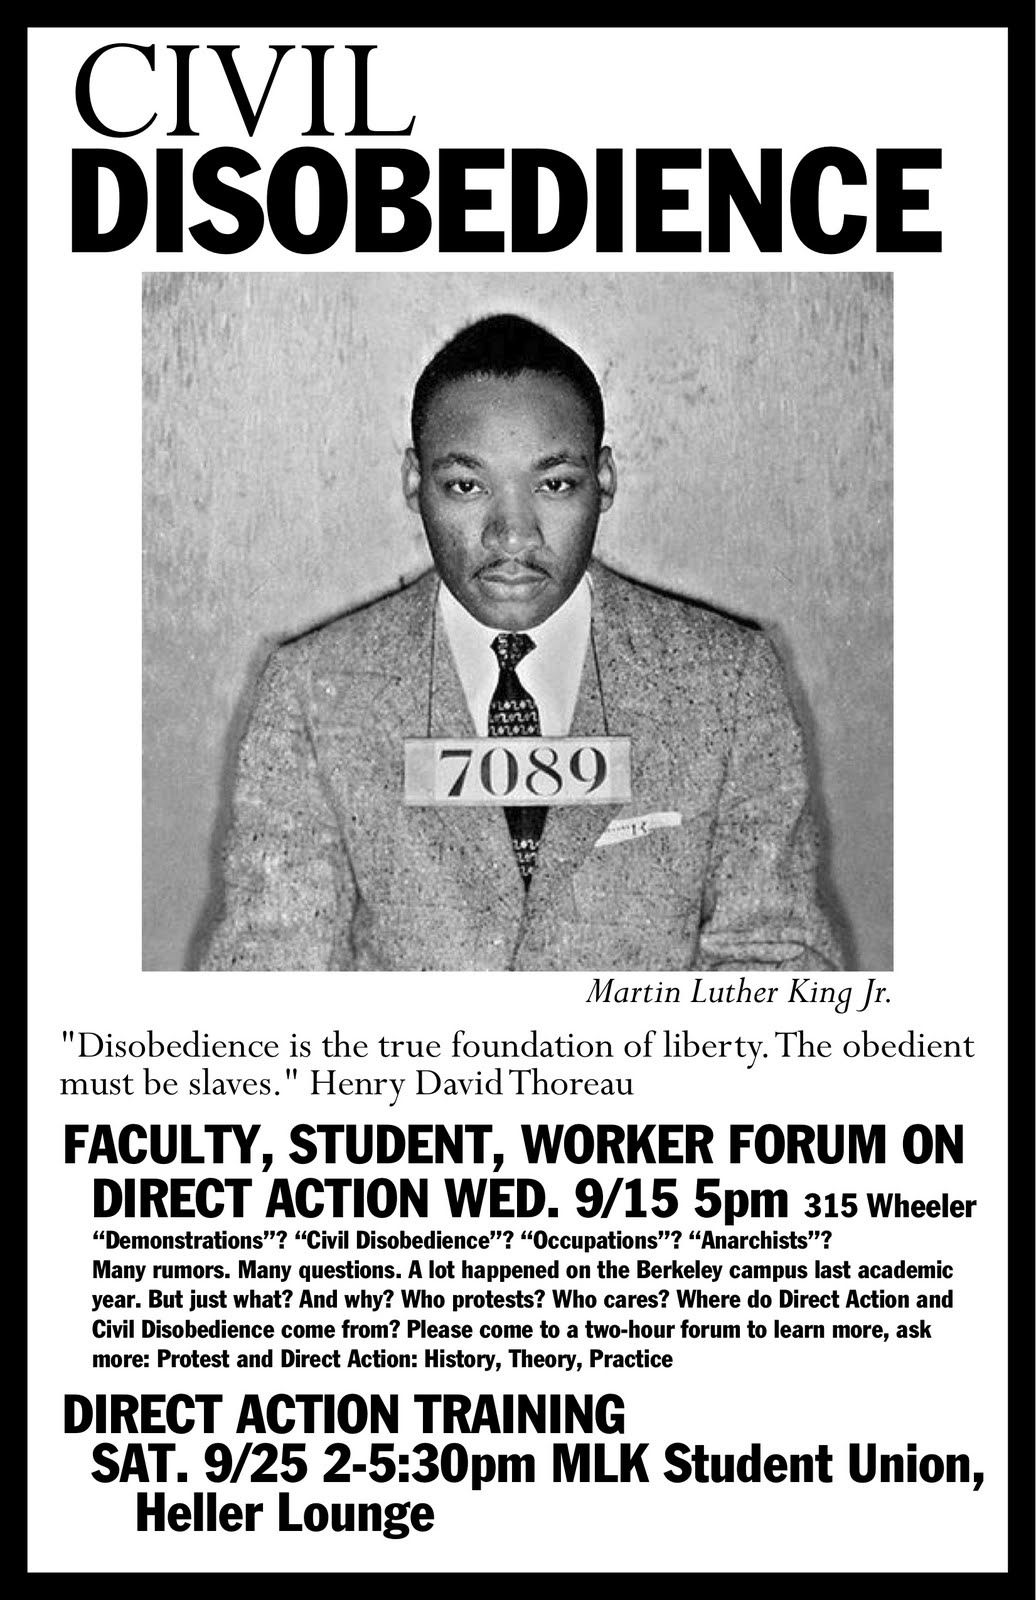 mlk essay martin luther king i have a dream essay martin luther  martin luther king jr s advice to us about using violence to martin luther king s